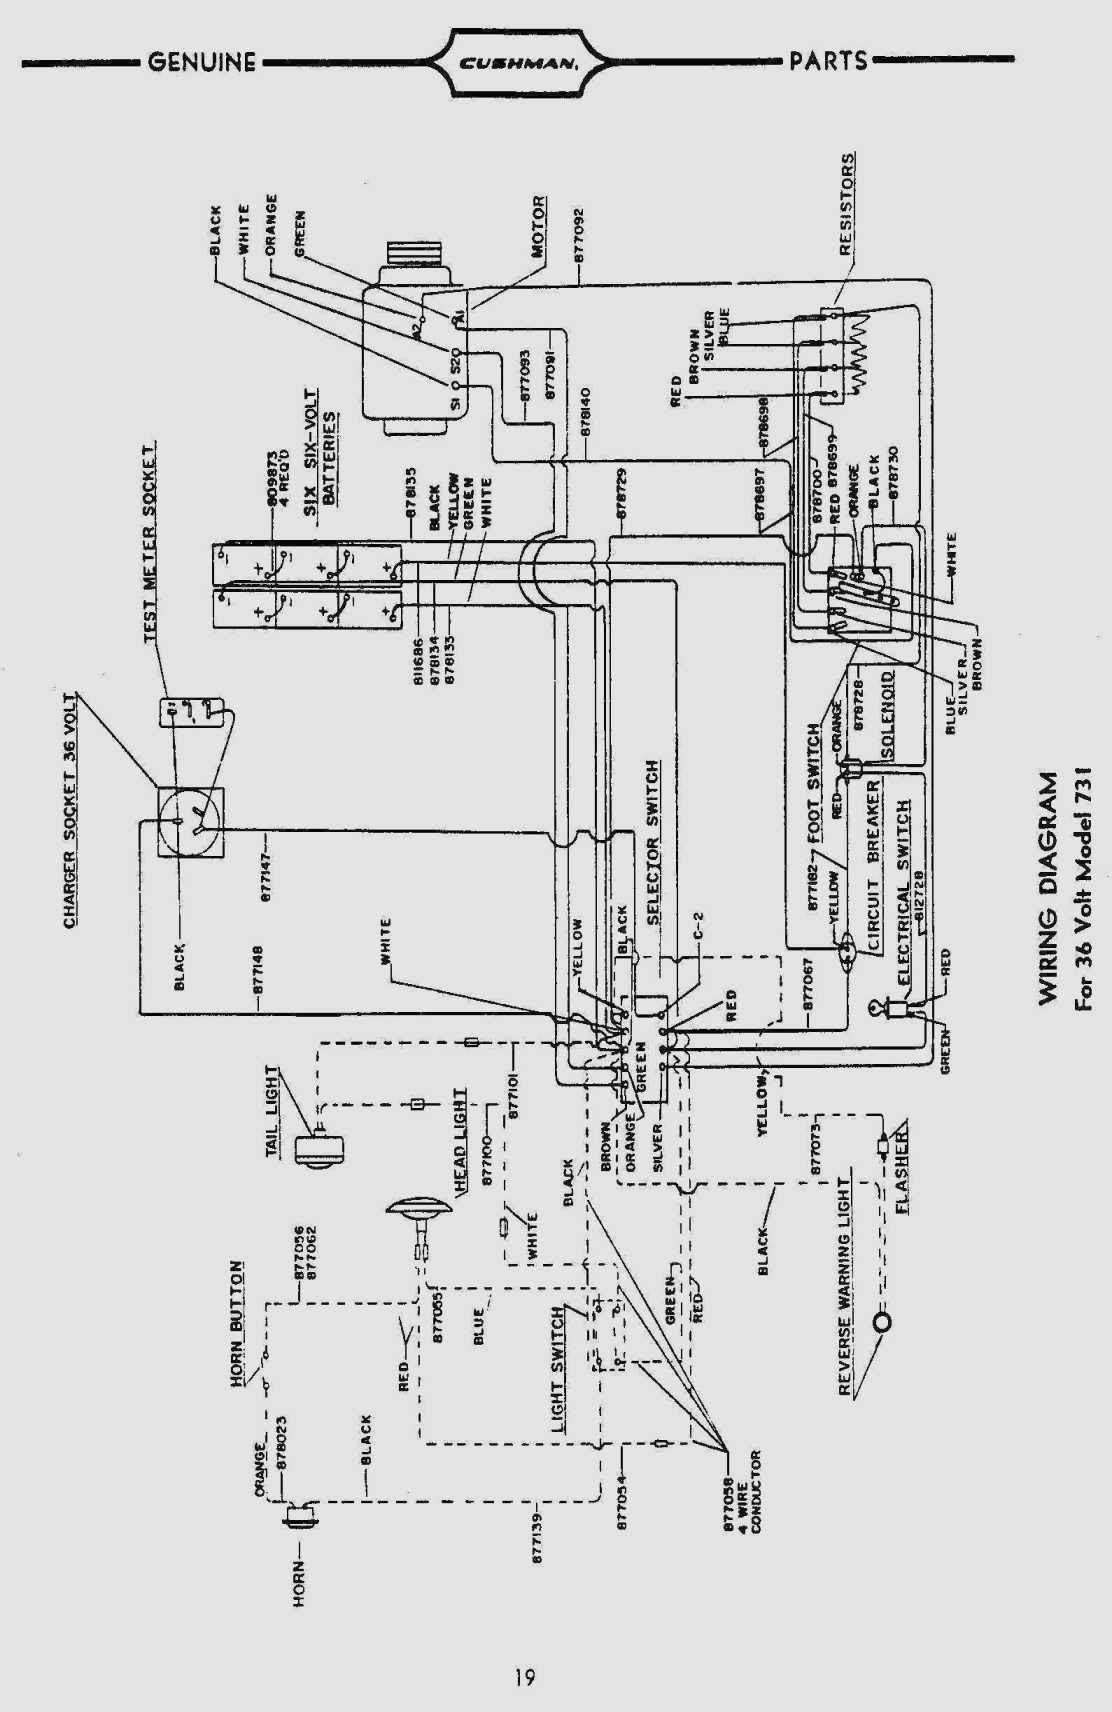 Diagram Wiring Diagram Ez Go Dom Full Version Hd Quality Go Dom Dlwiringx18 Locandadossello It